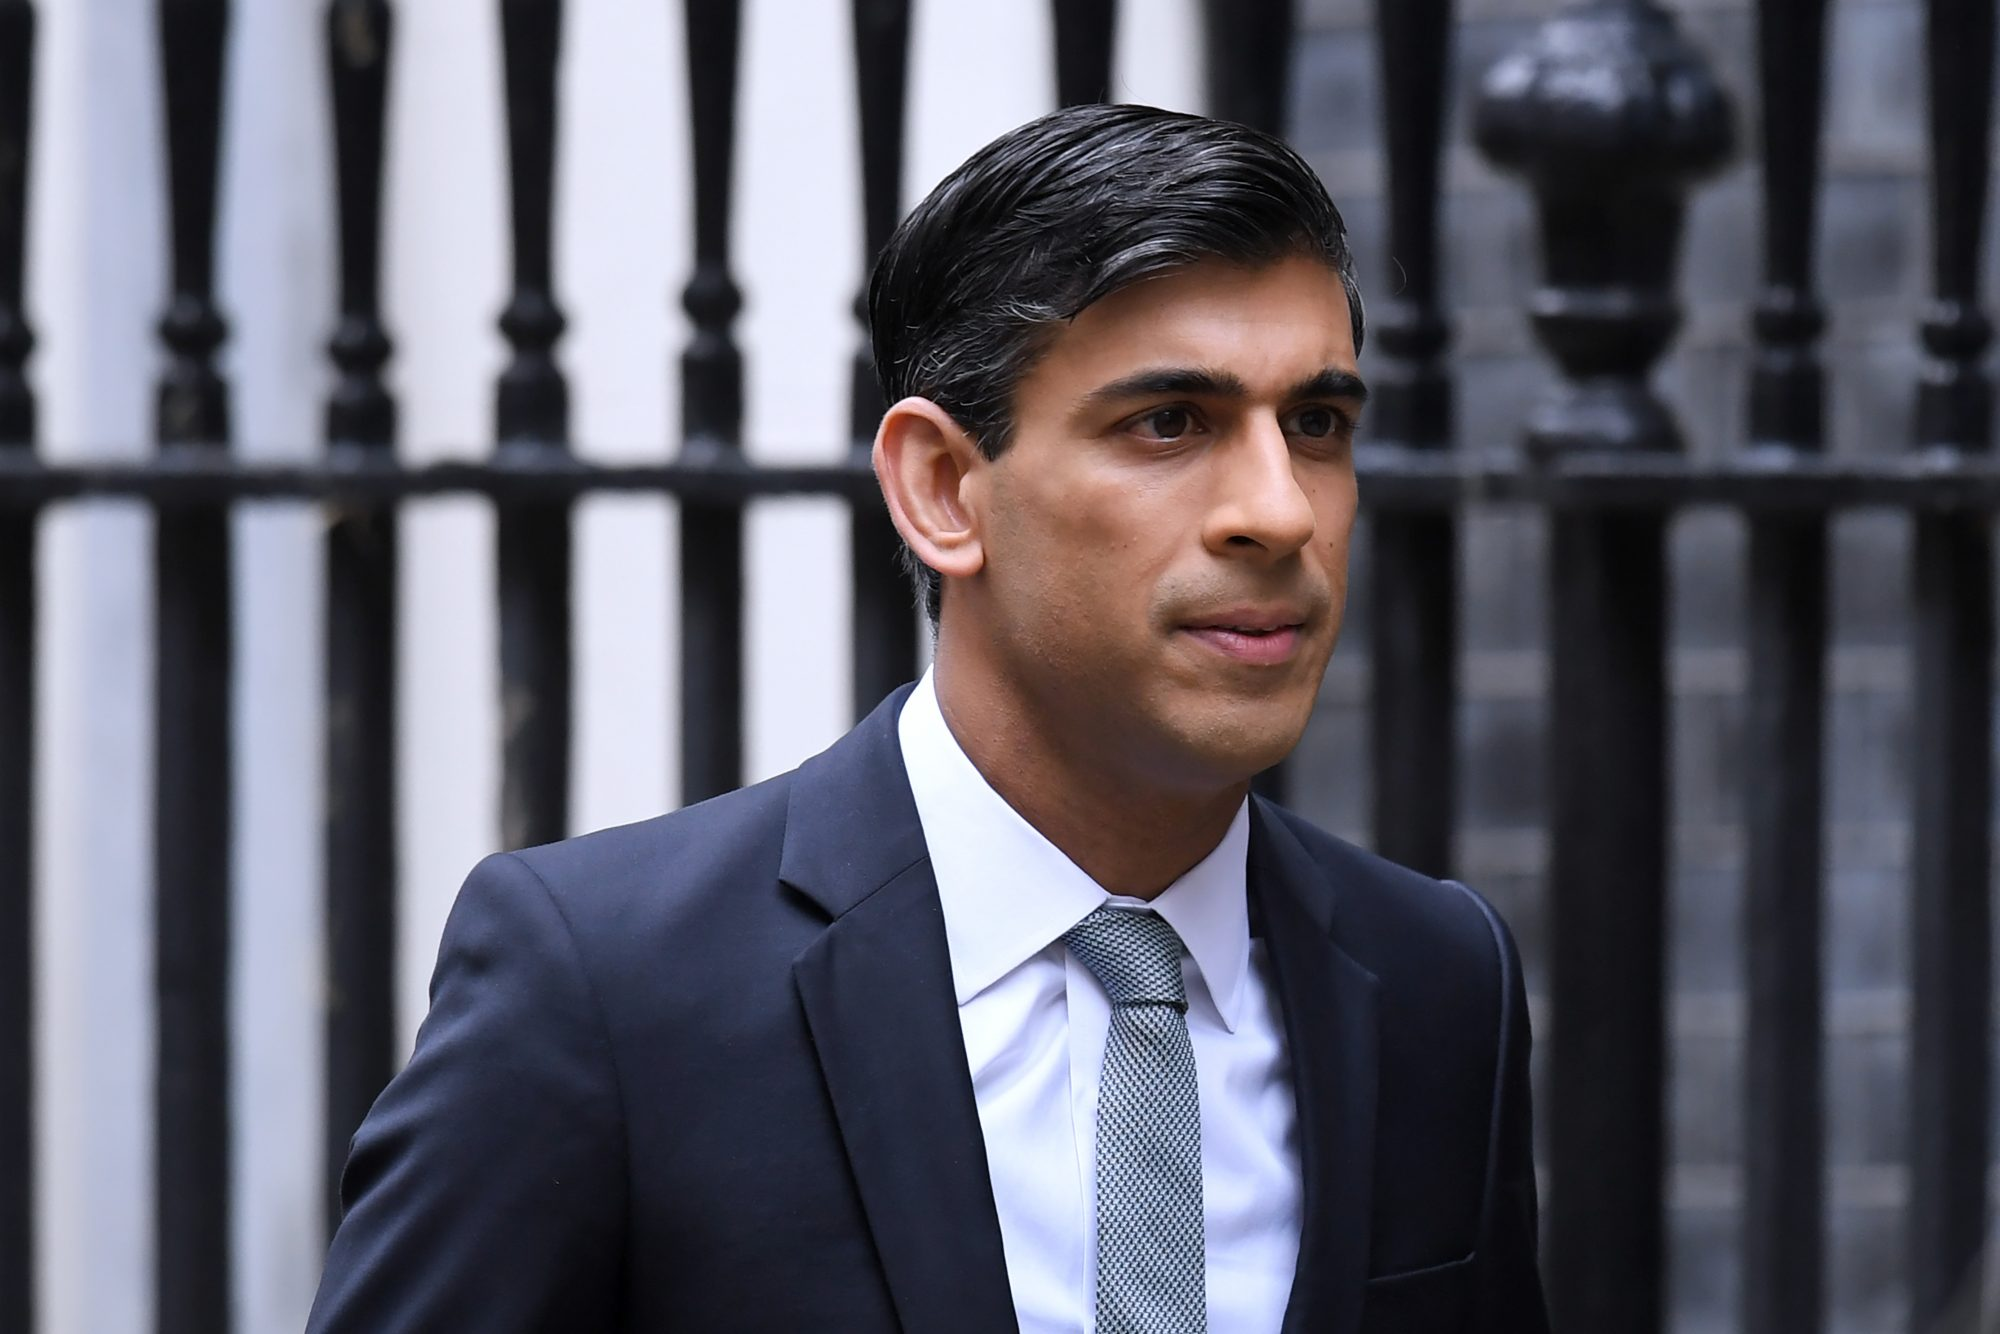 Sunak warns 'tough choices ahead' for economy, over taxes and spending - channel 4